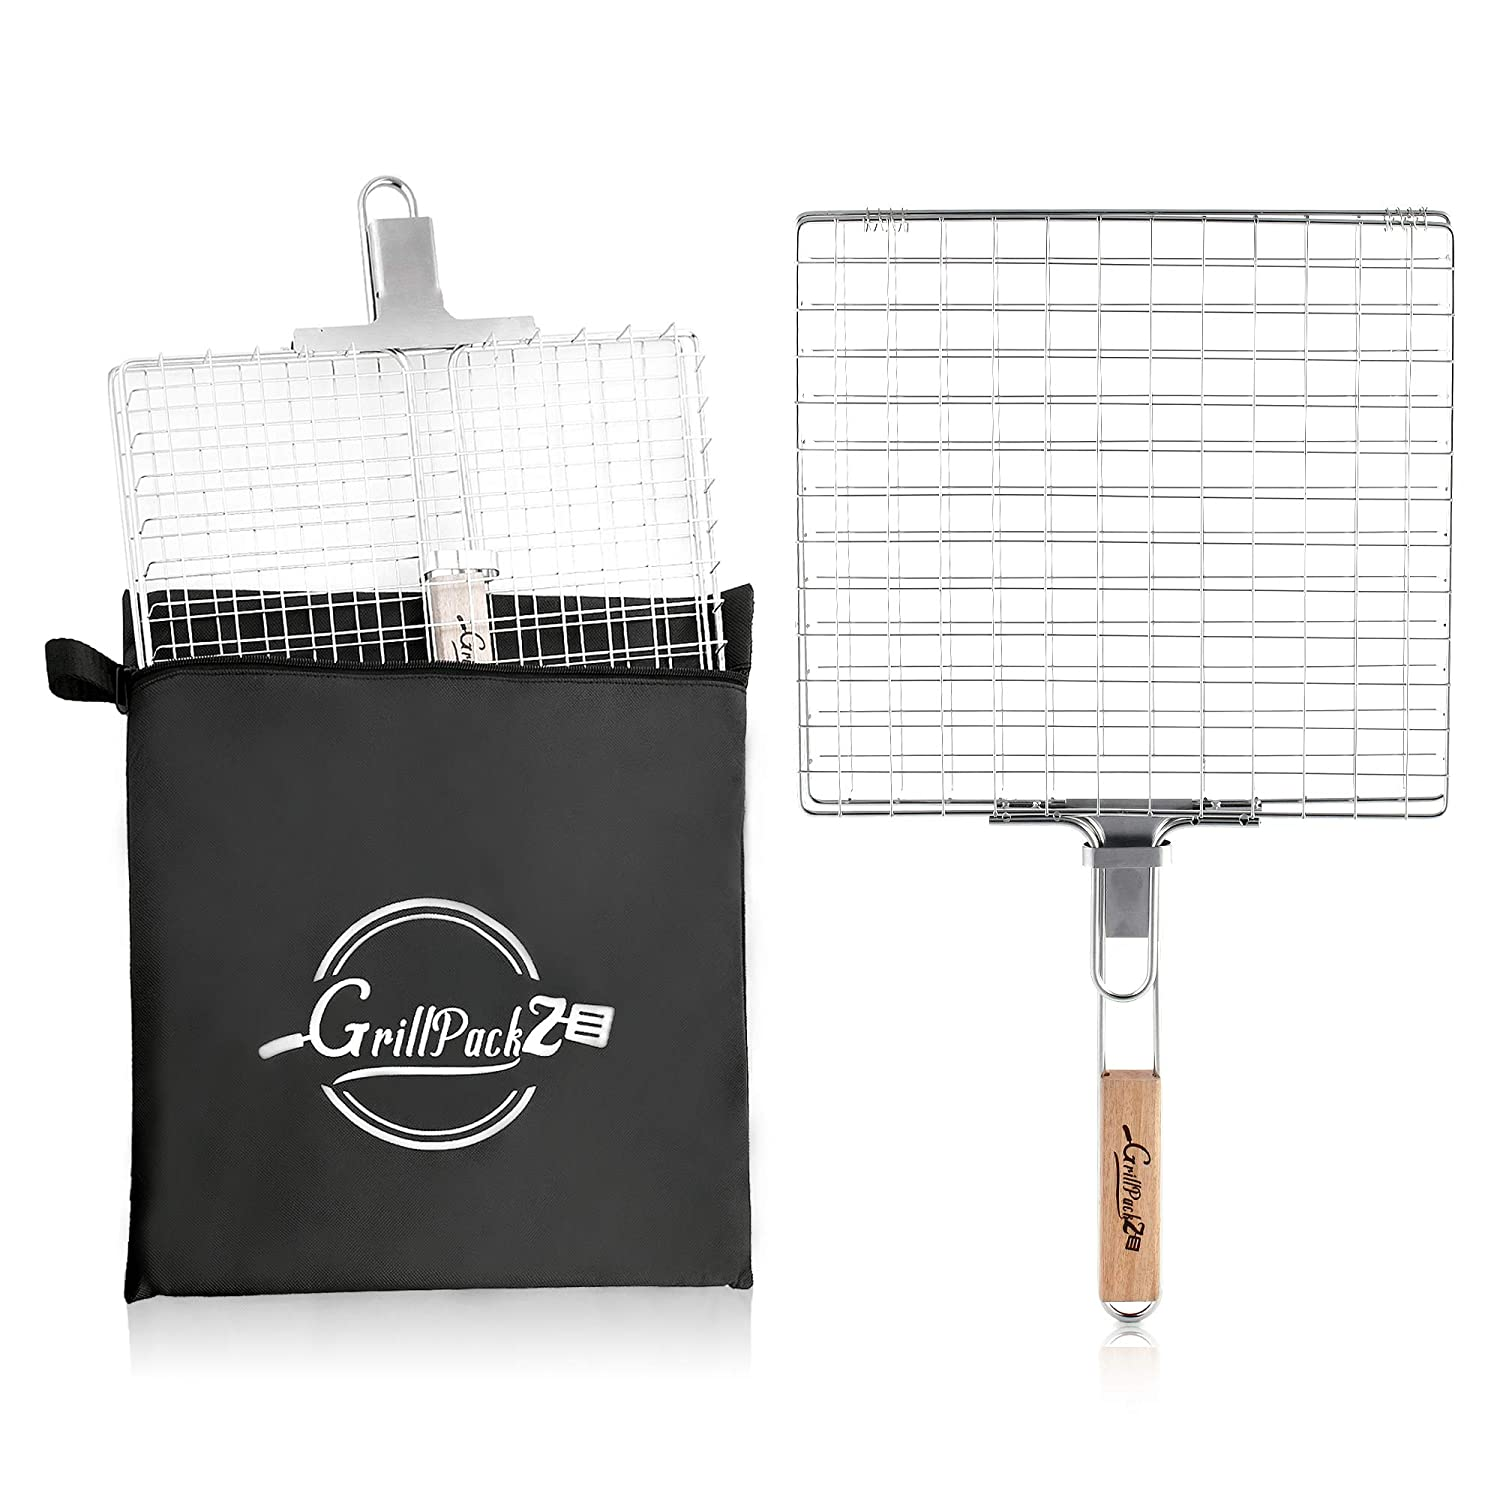 GrillPackz BBQ Grill Basket – Portable Stainless-Steel BBQ Grilling Basket – Non-Stick Foldable Grill Basket for Barbequing Meat, Fish, Vegetables, More – 13 x 12 Inches with Foldable Wooden Handle